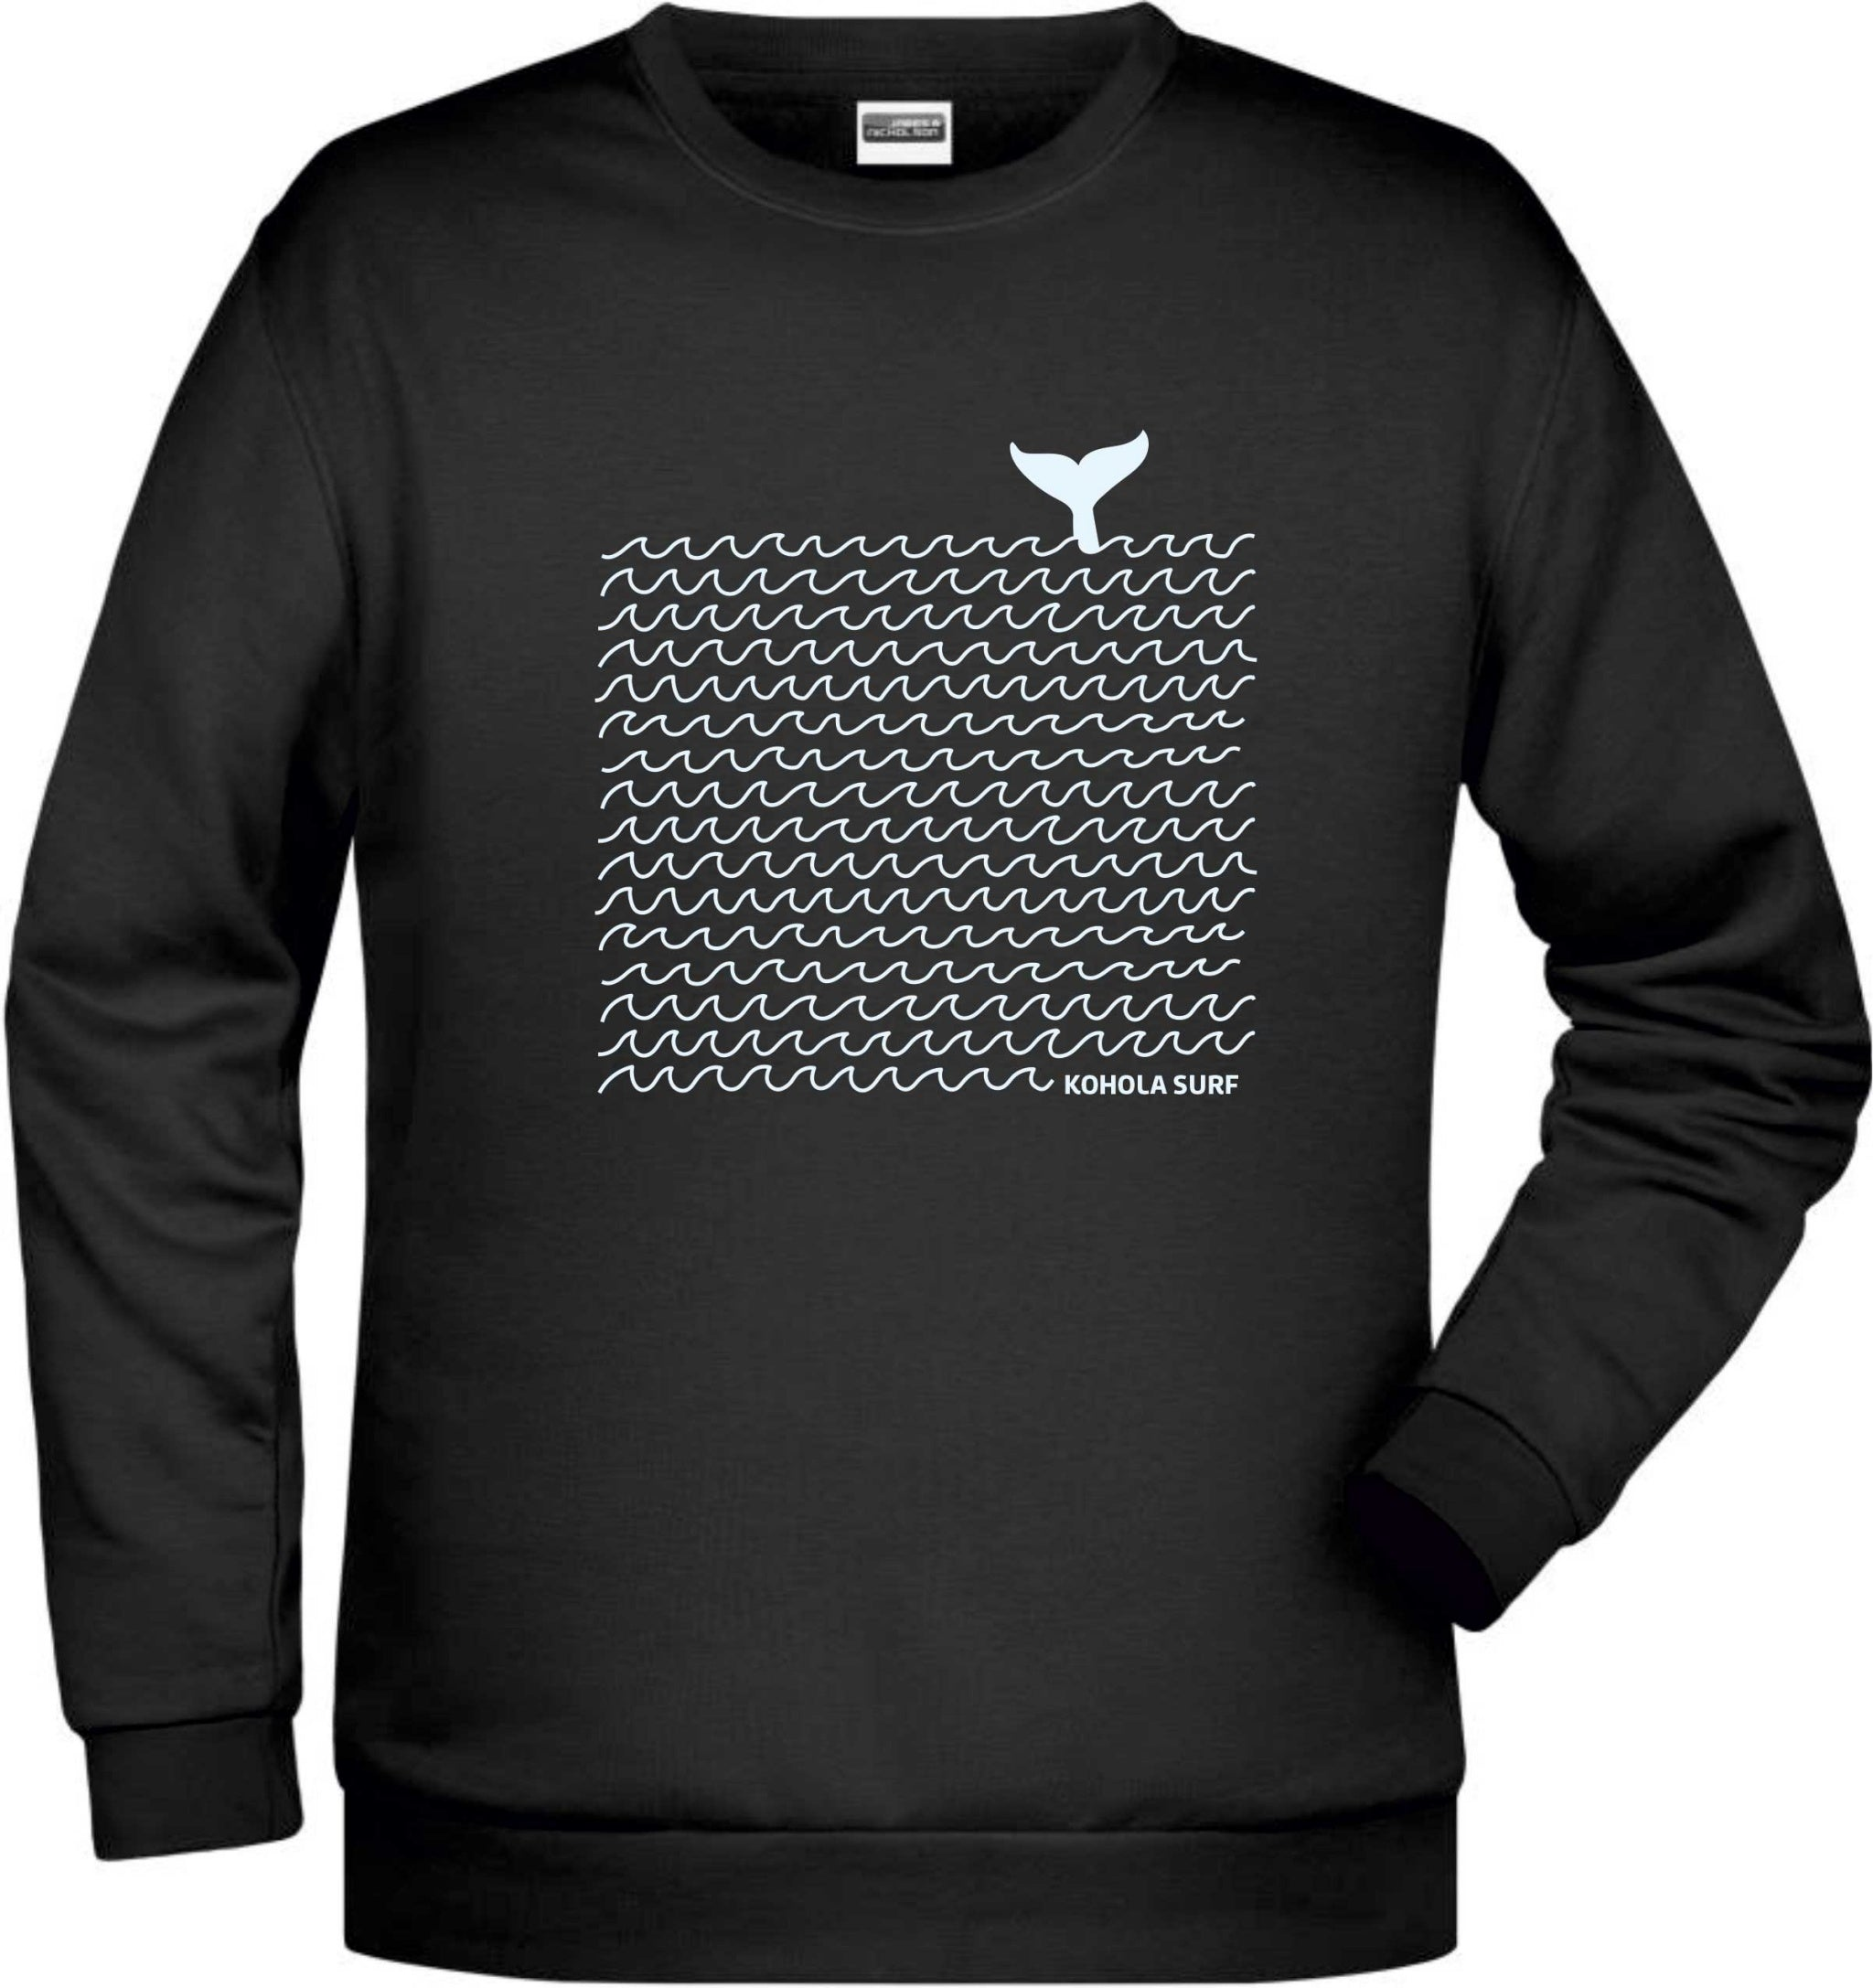 Whale & Waves Unisex Sweatshirt